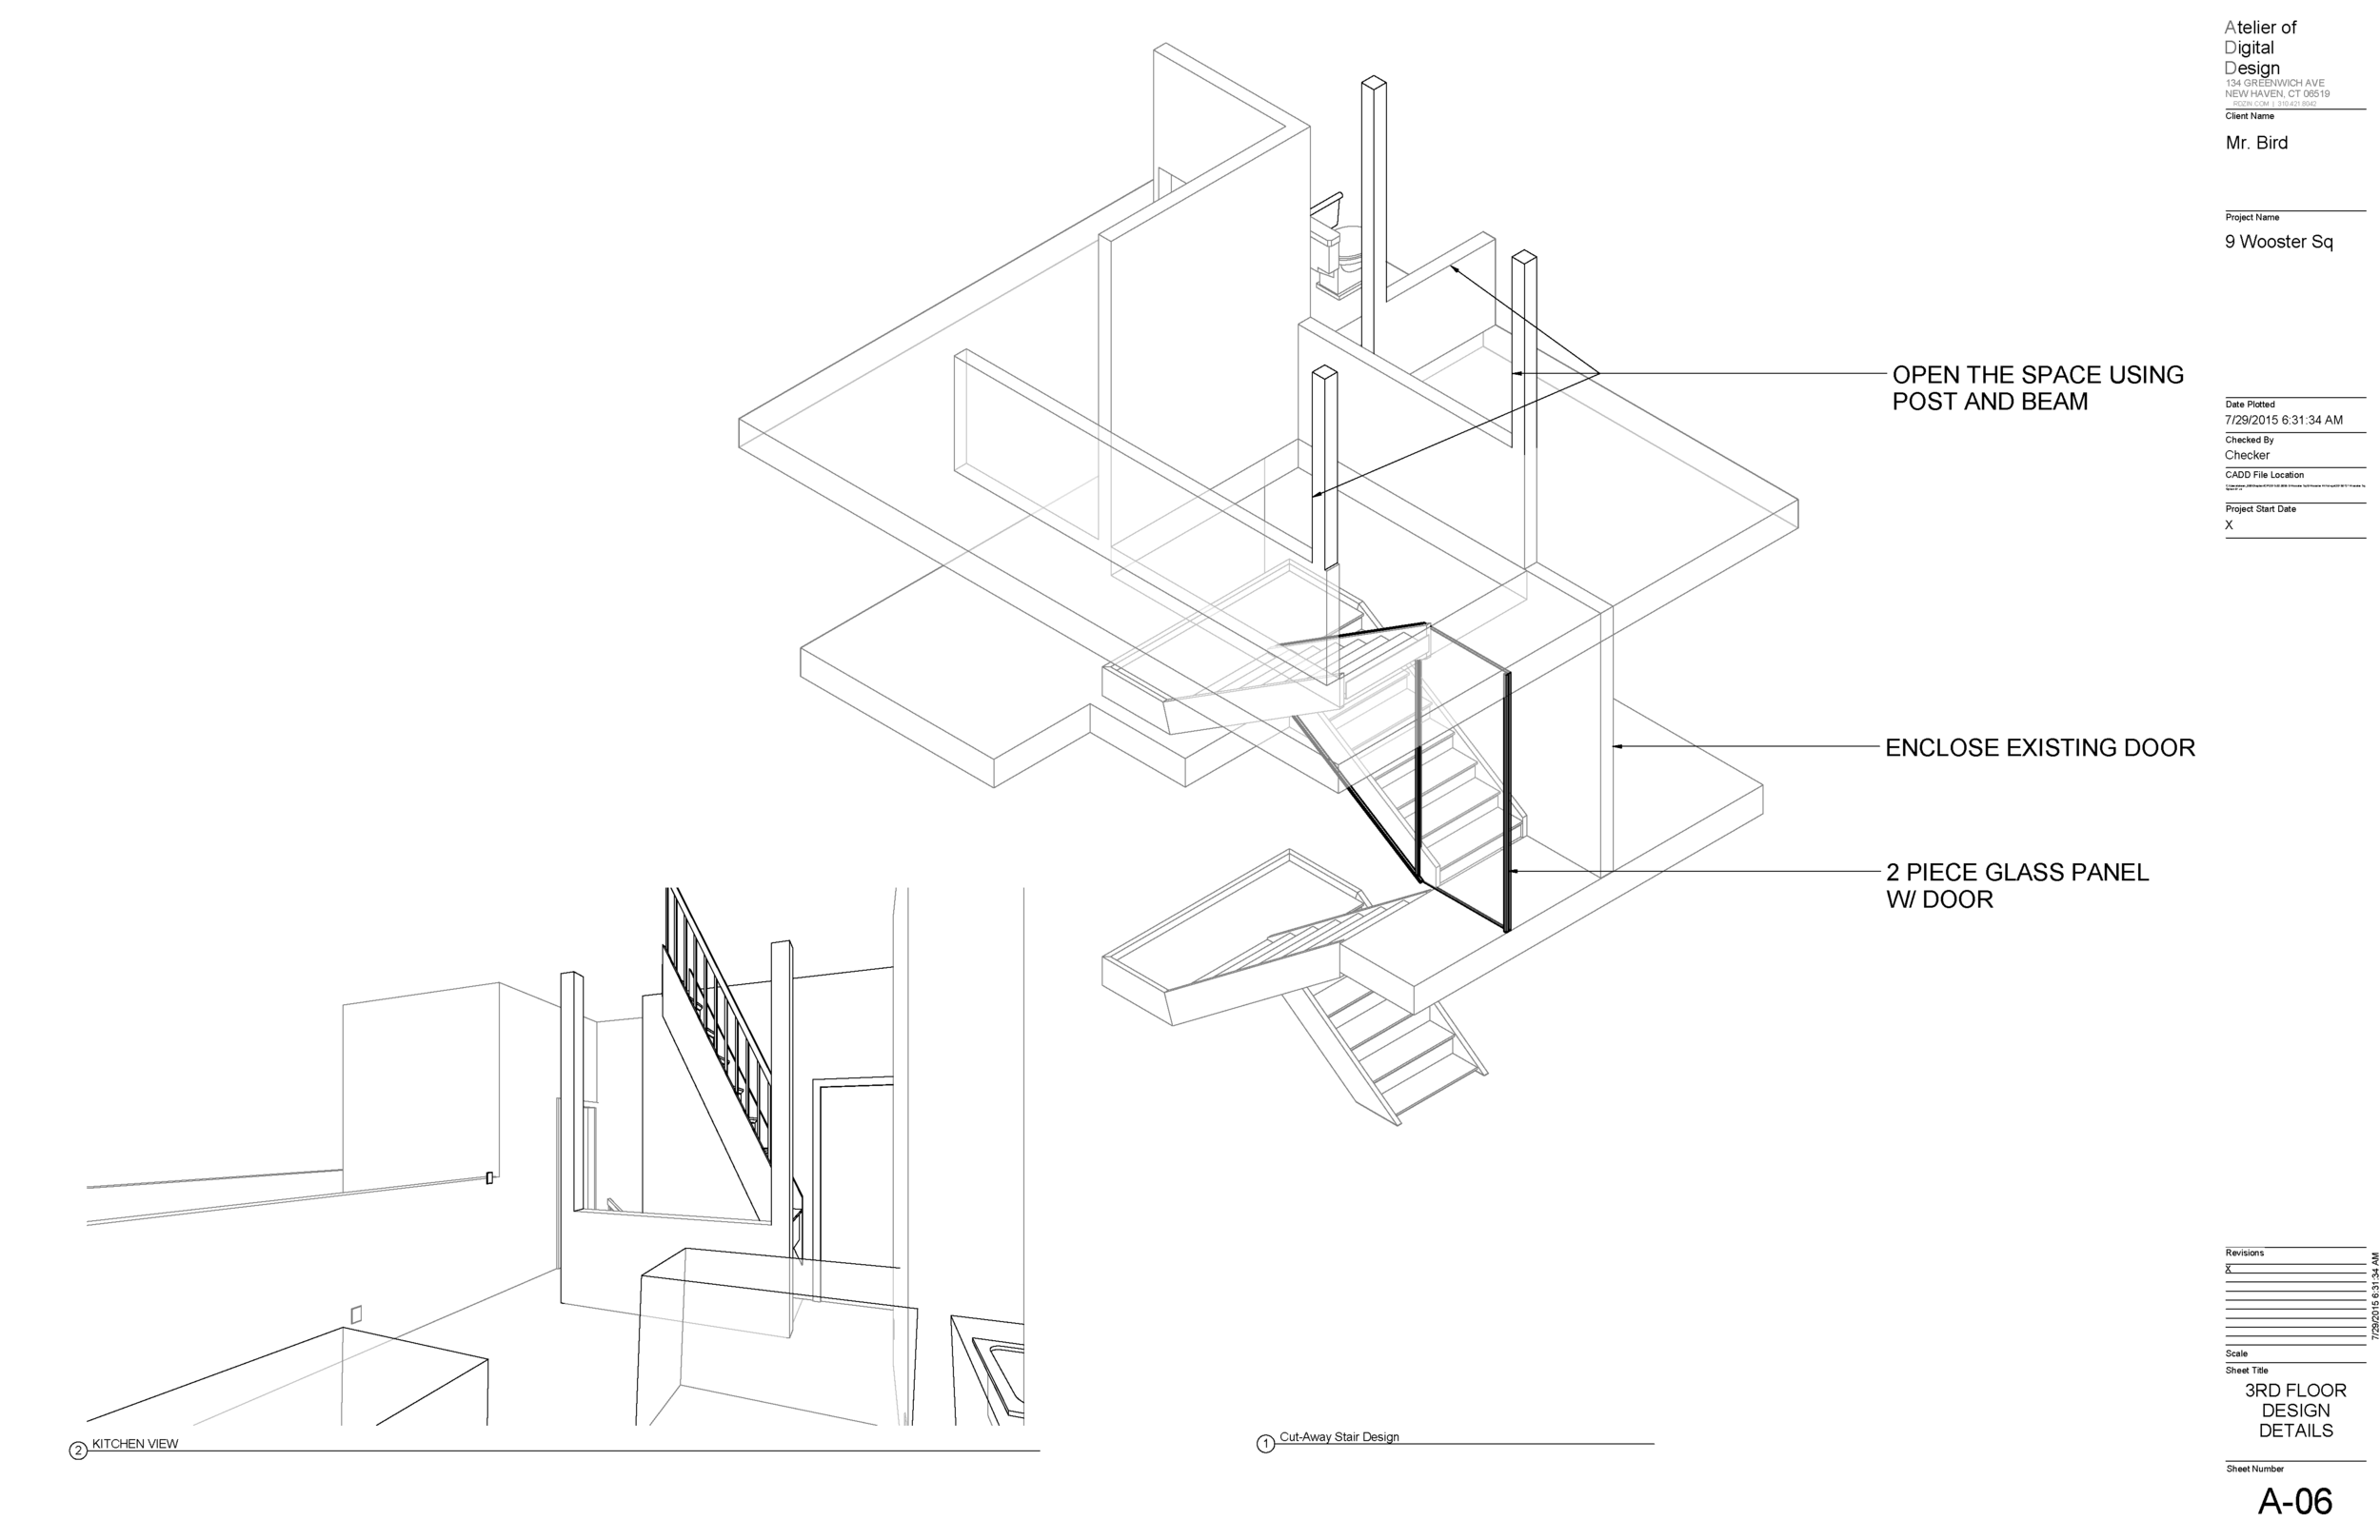 20150727 Wooster Sq O1_Page_5.png